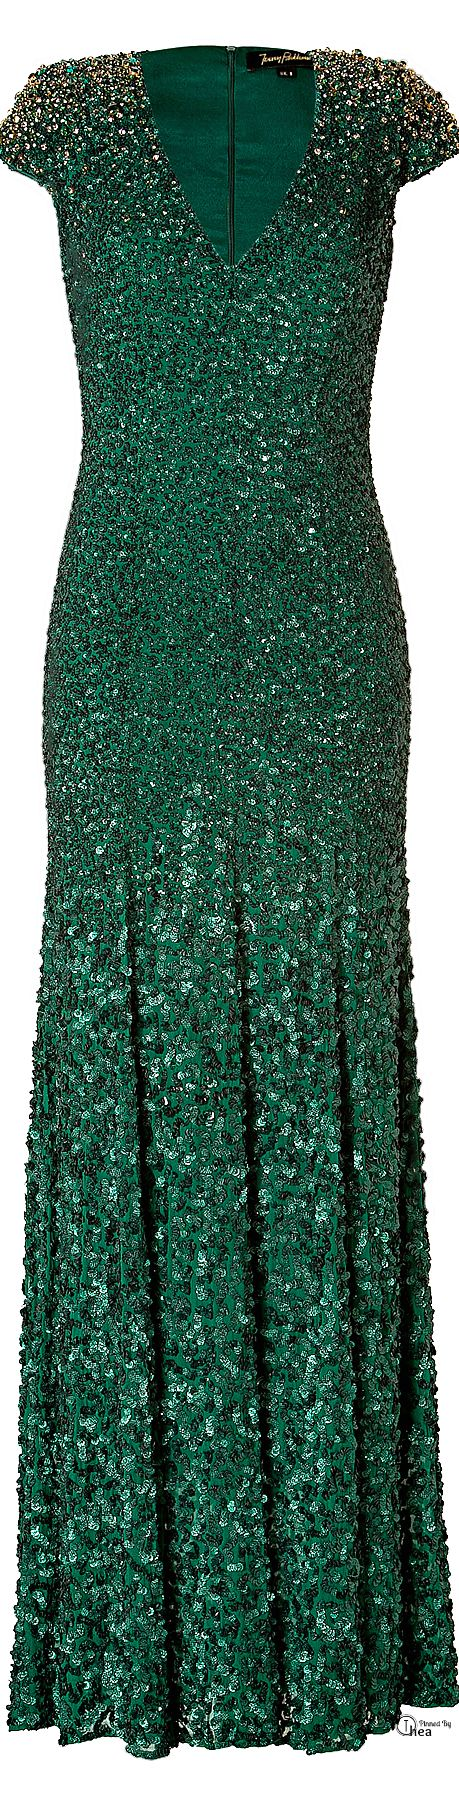 Jenny Packham● Sequined Emerald green silk gown